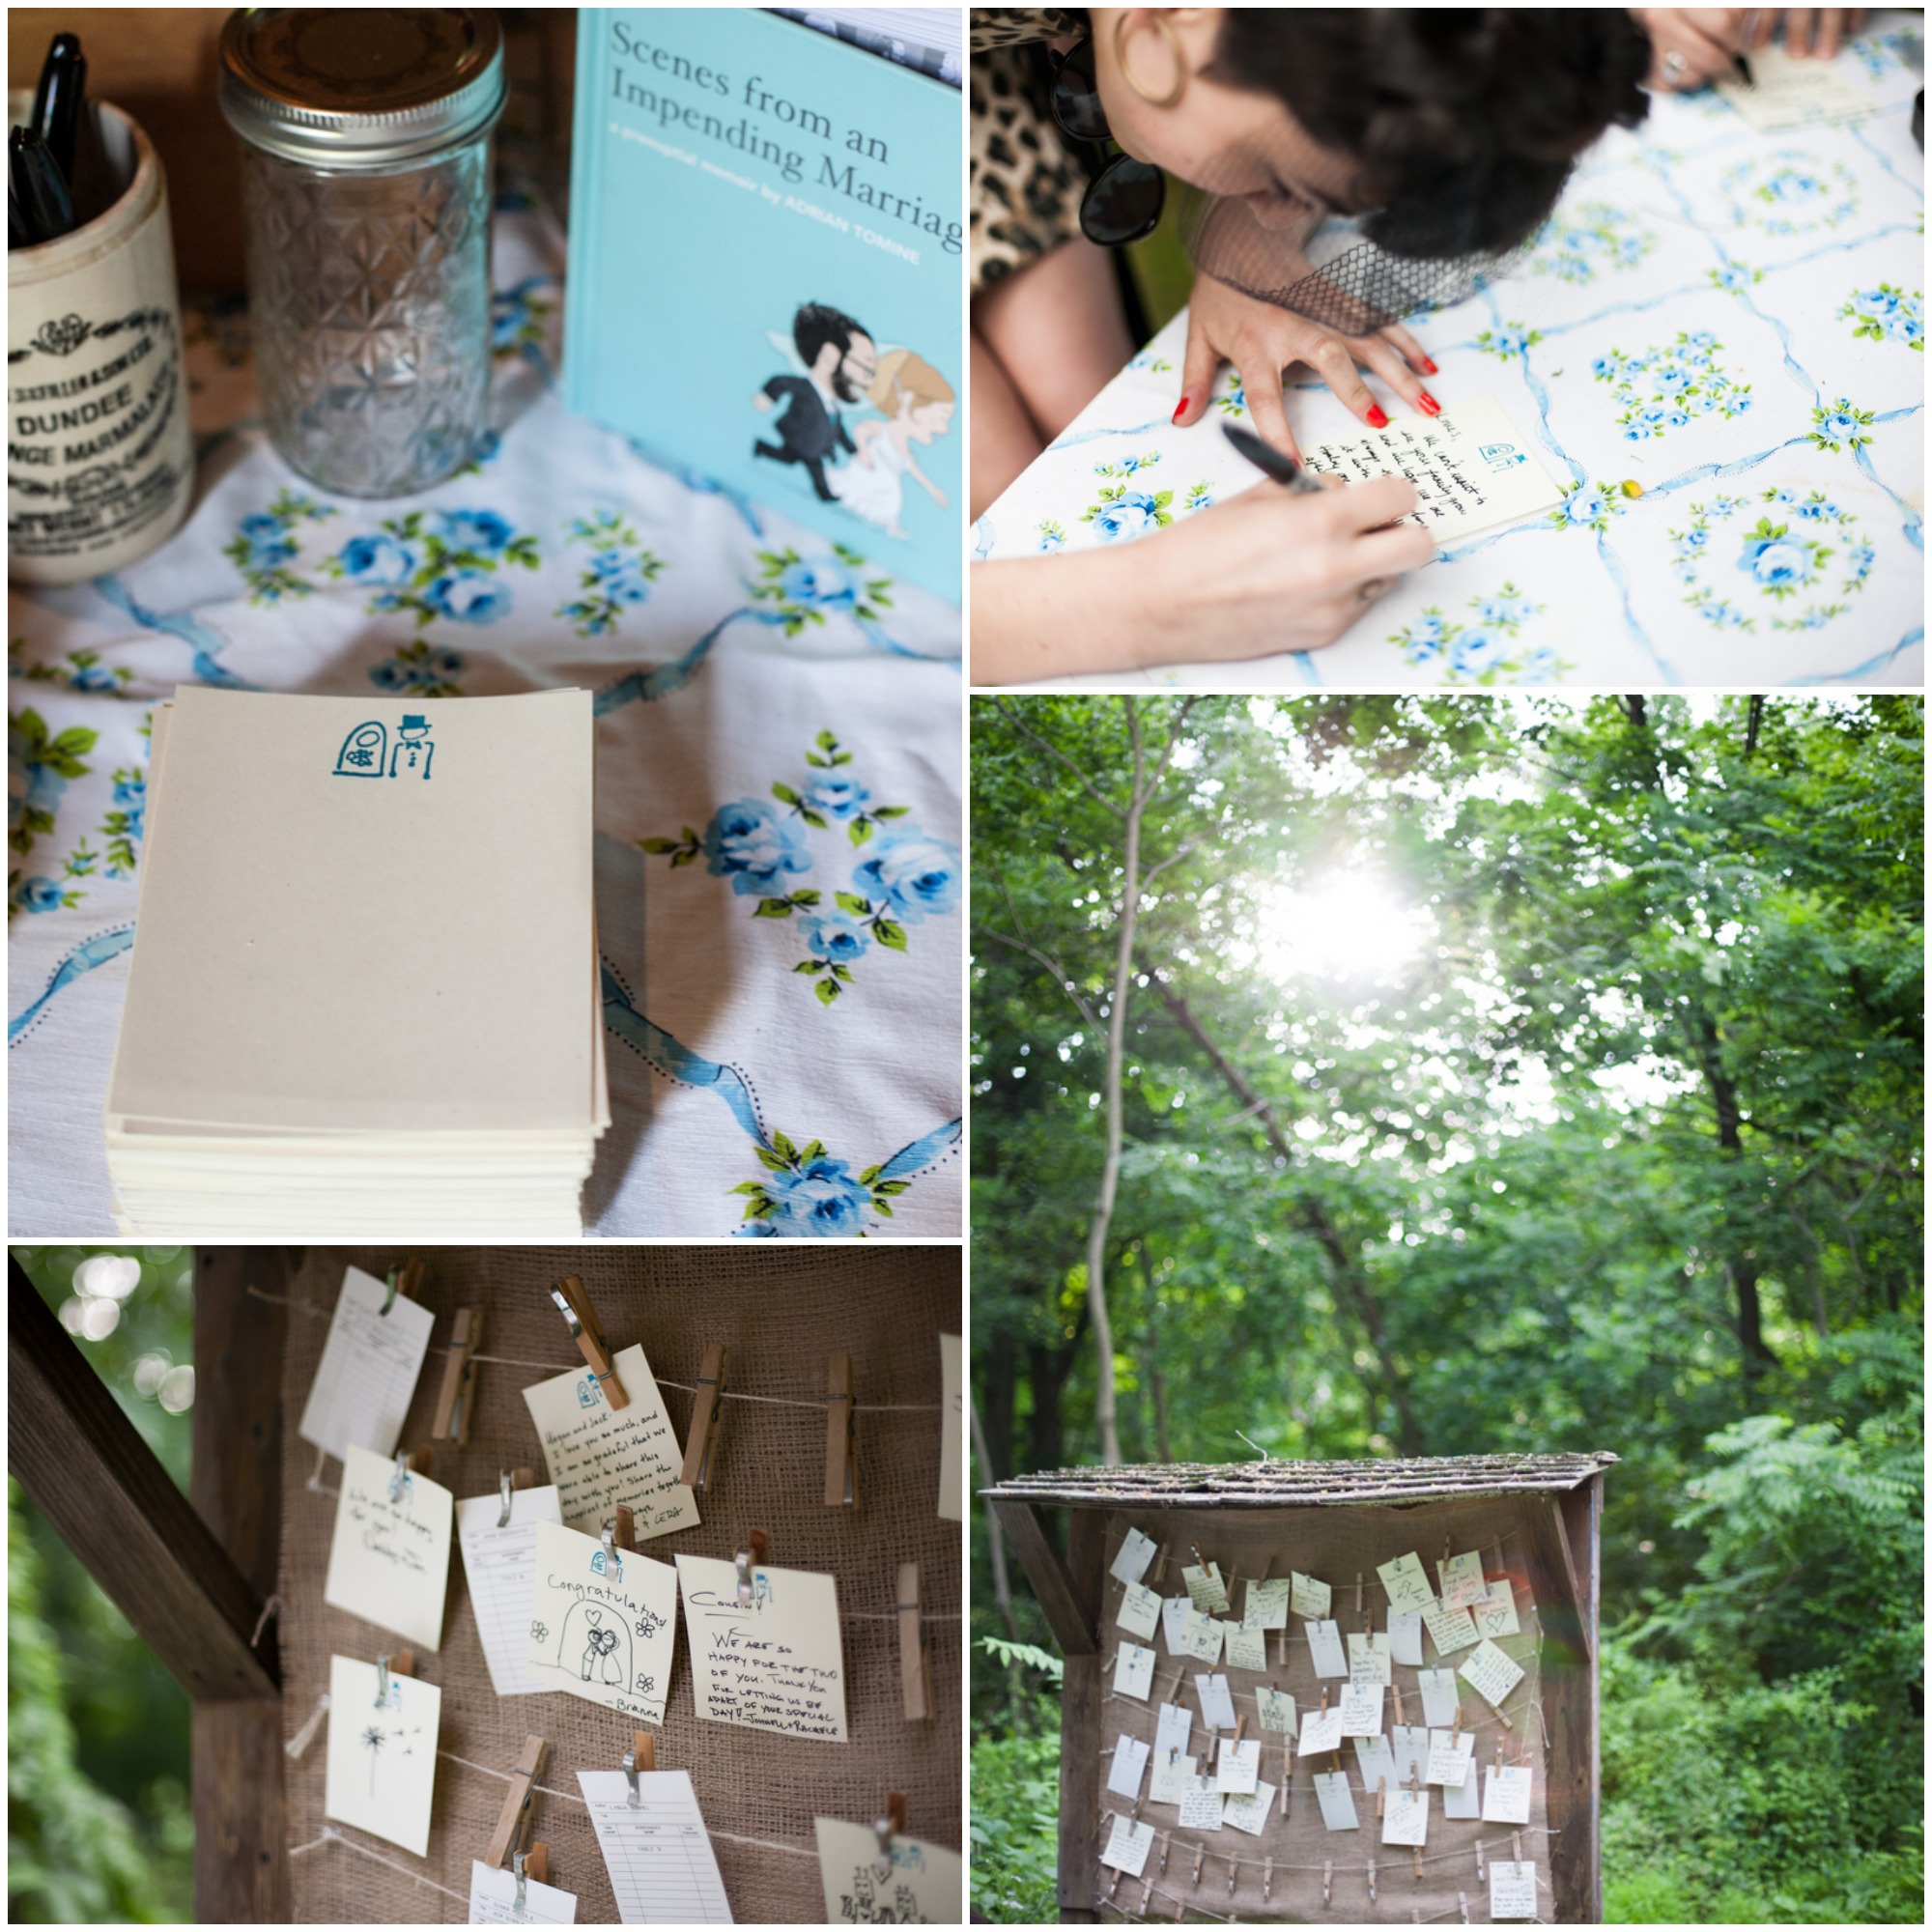 Fraser Valley Wedding Rustic Decorations: Hudson River Valley Barn Wedding